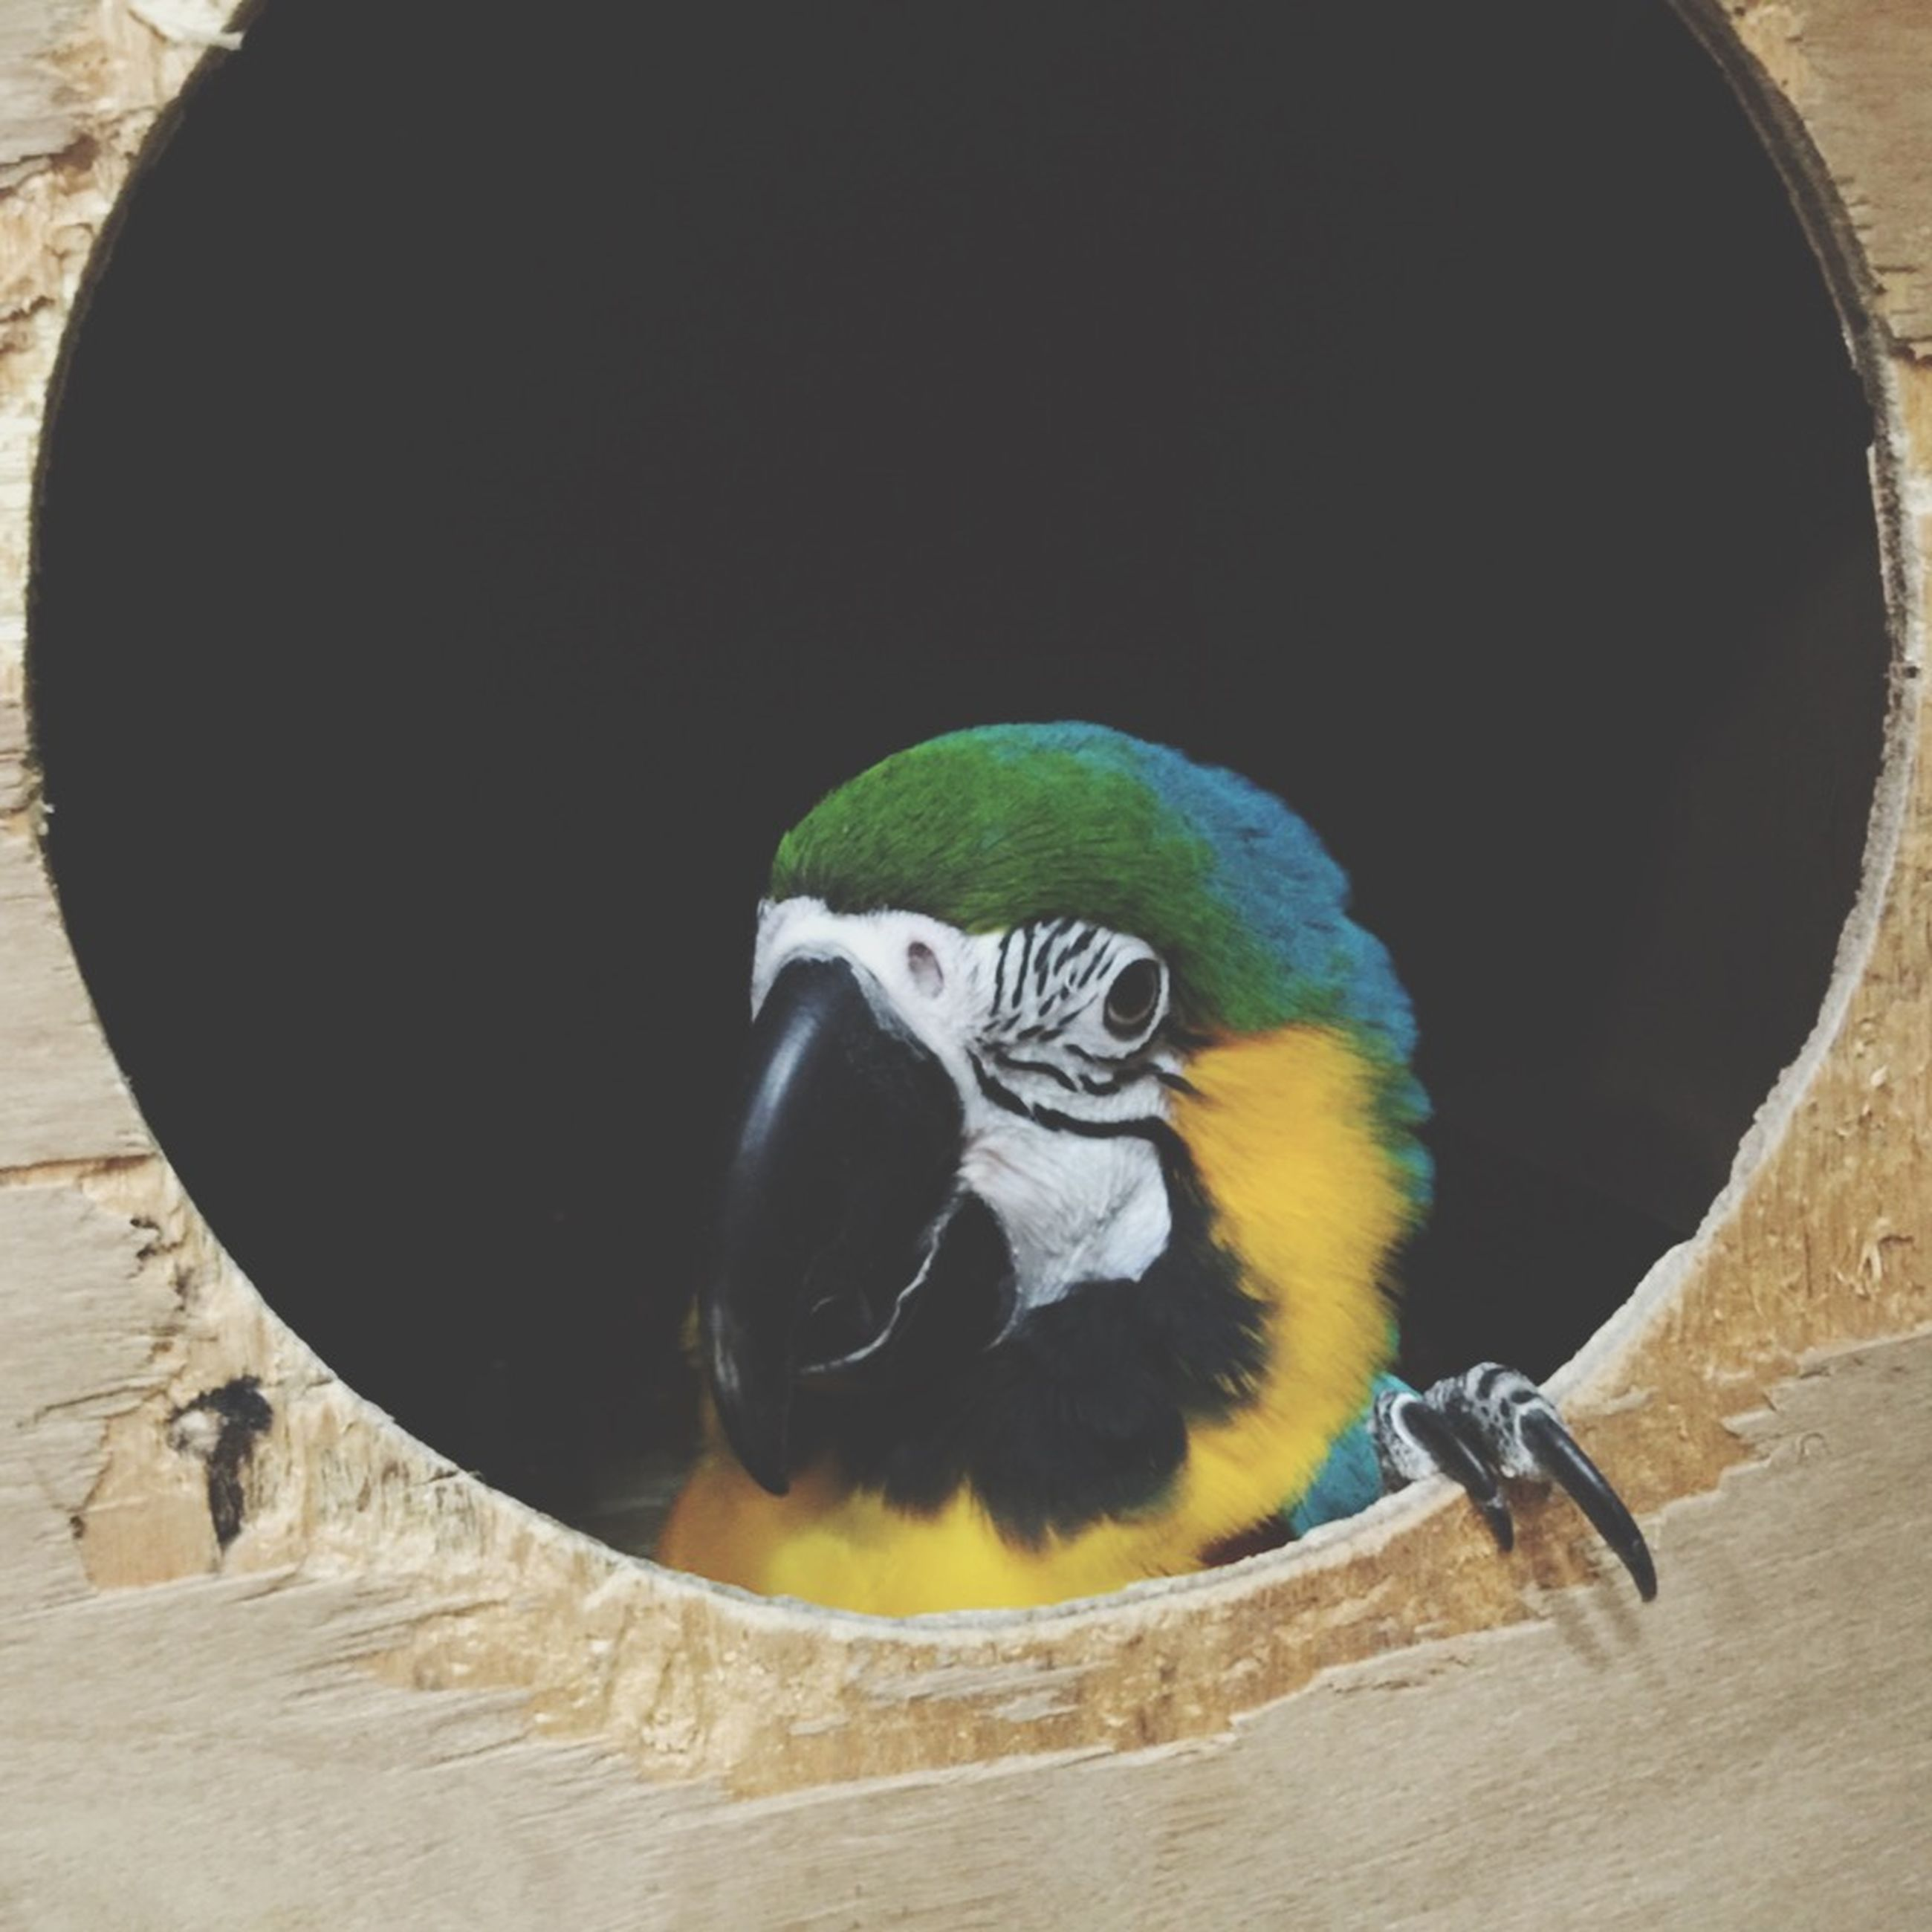 bird, animal themes, creativity, art, indoors, high angle view, art and craft, close-up, animal representation, circle, animals in the wild, no people, wildlife, still life, one animal, day, table, directly above, nature